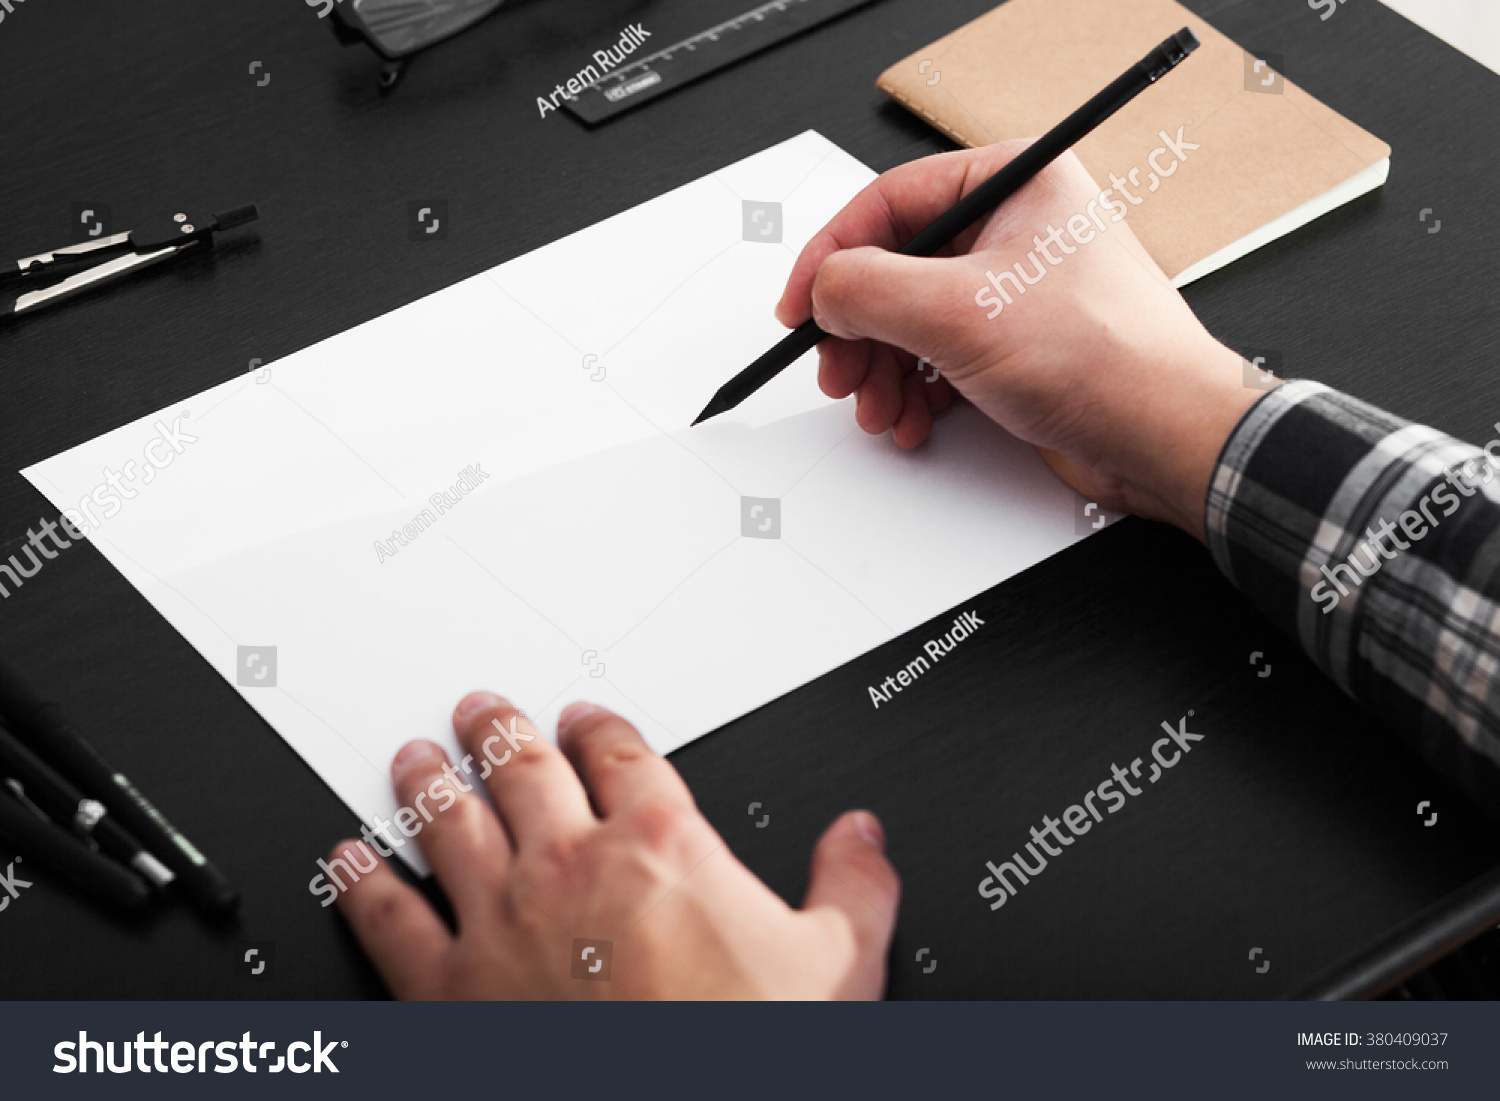 Superb img of Artist Drawing On A4 Paper Black Stock Photo 380409037 Shutterstock with #9A5C31 color and 1500x1101 pixels